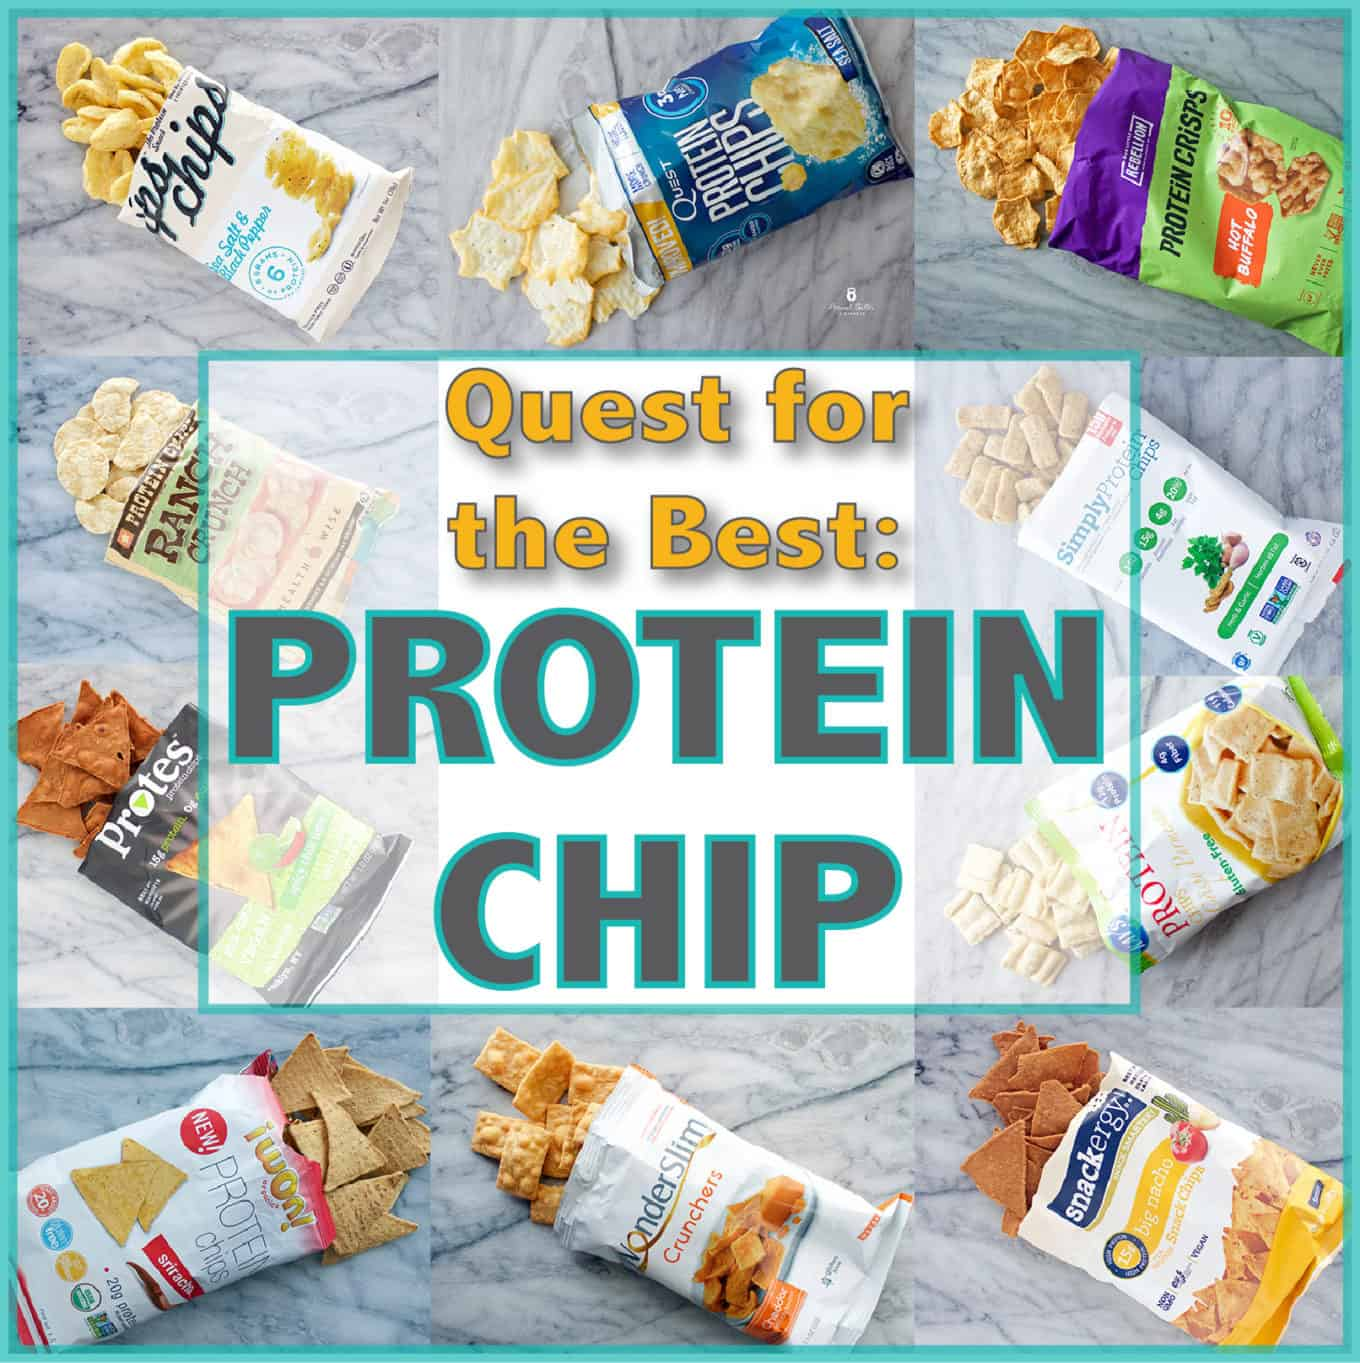 Quest for the Best – Protein Chip